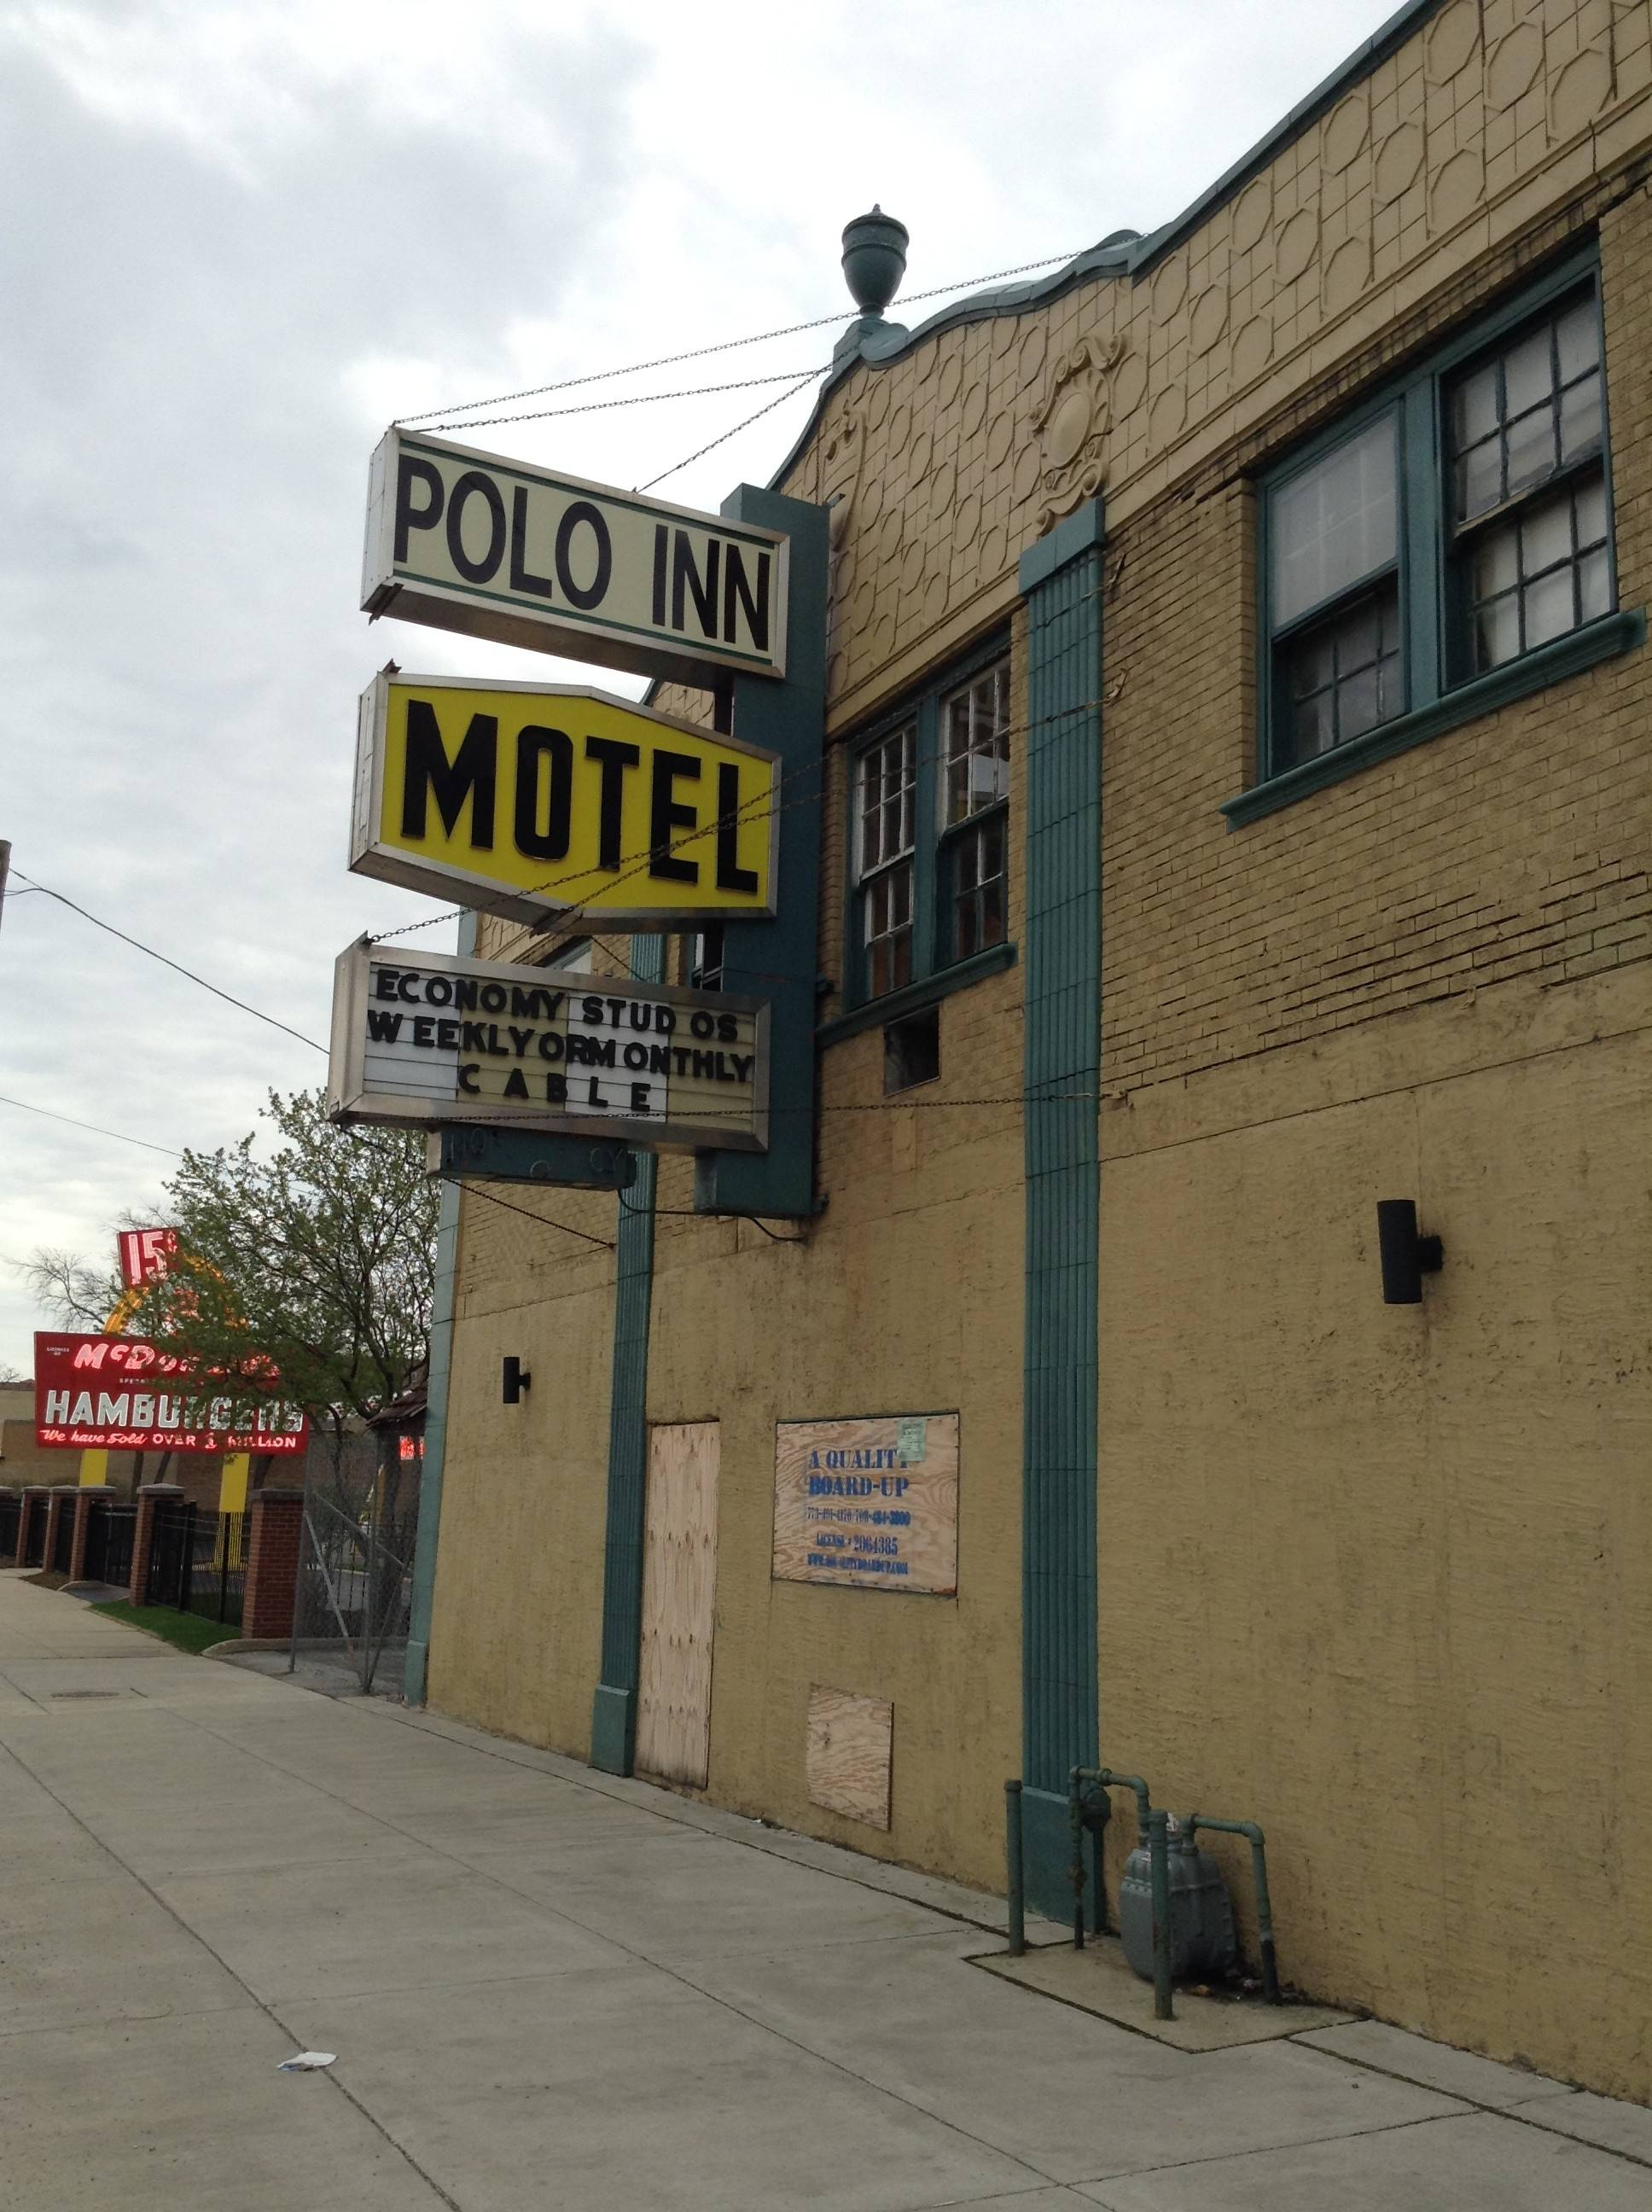 Litigation over the future of the Polo Inn Motel in Des Plaines, which the city wants to demolish, could last years, city officials say.